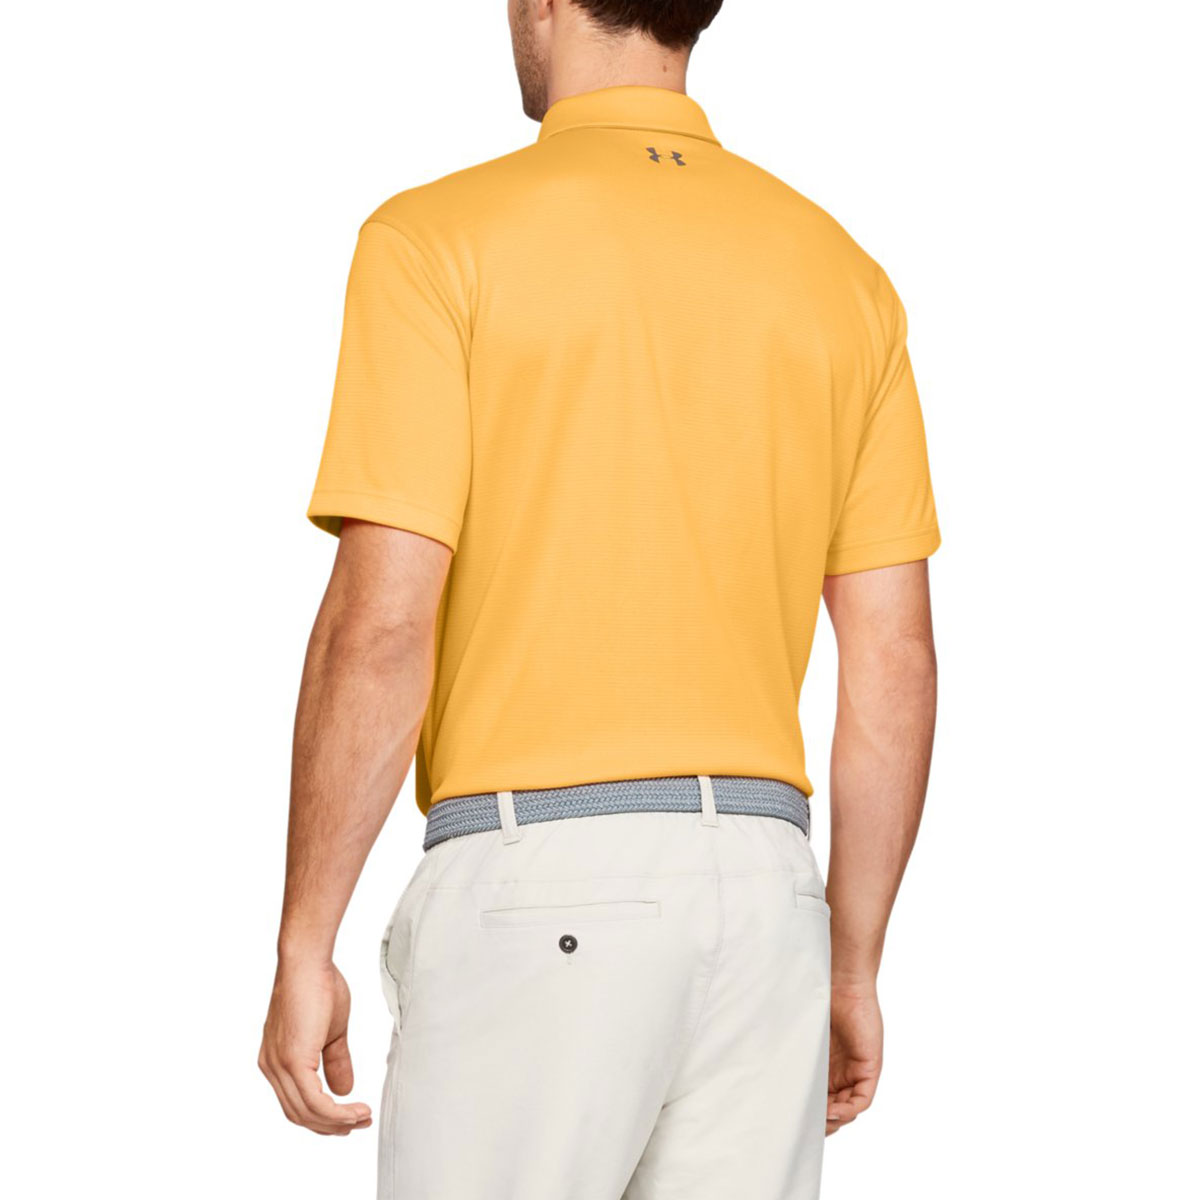 Under-Armour-Mens-2019-Golf-Tech-Wicking-Textured-Soft-Light-Polo-Shirt thumbnail 45